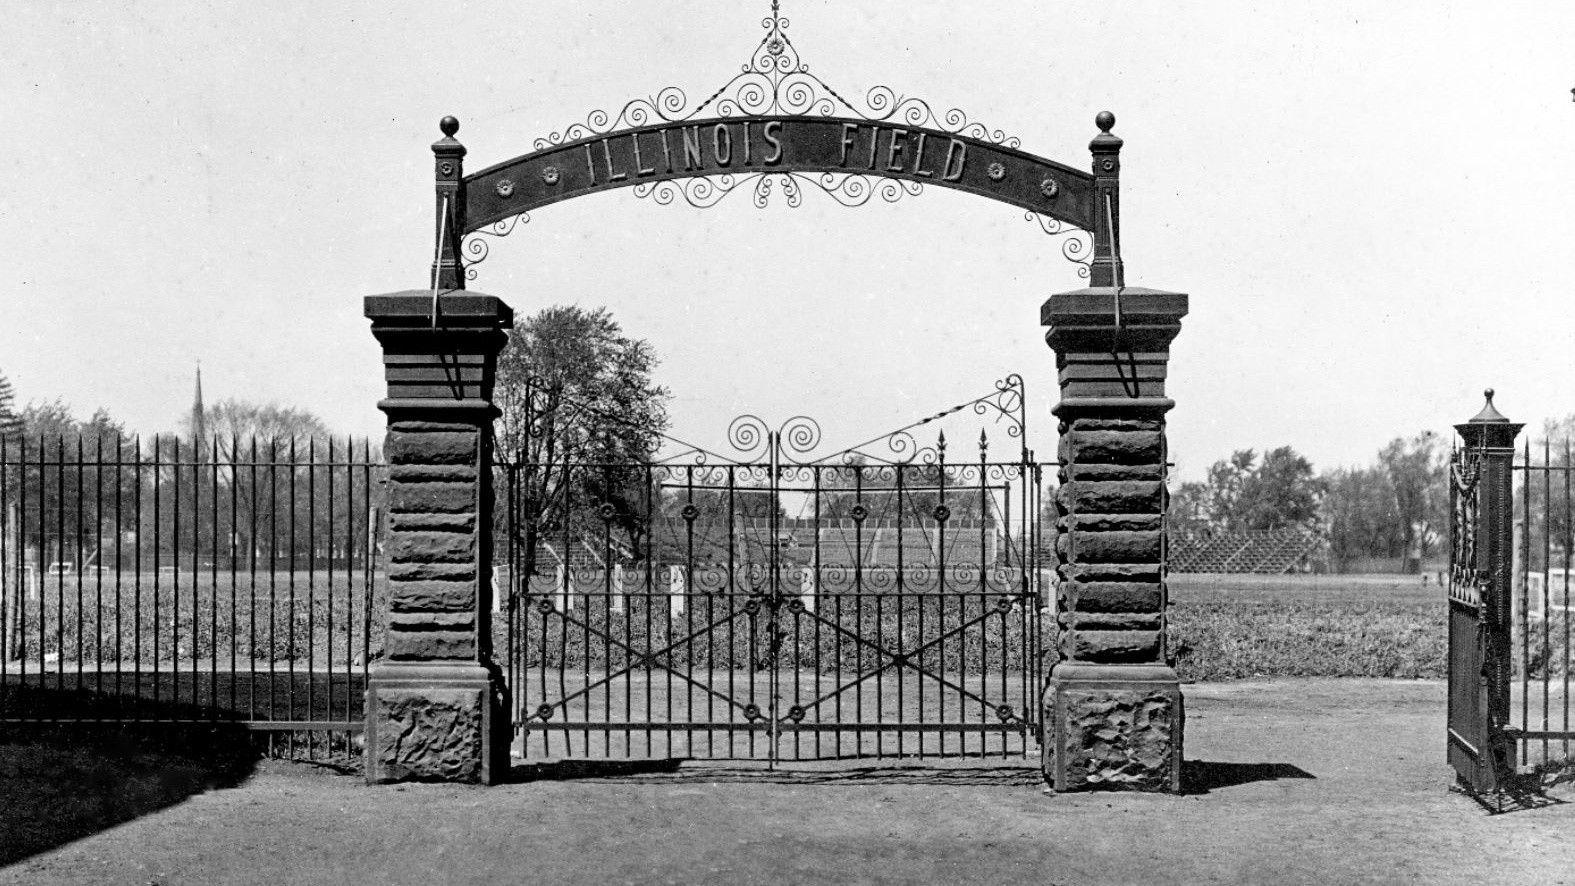 portal to Illinois Field. Photo courtesy of the University Archives